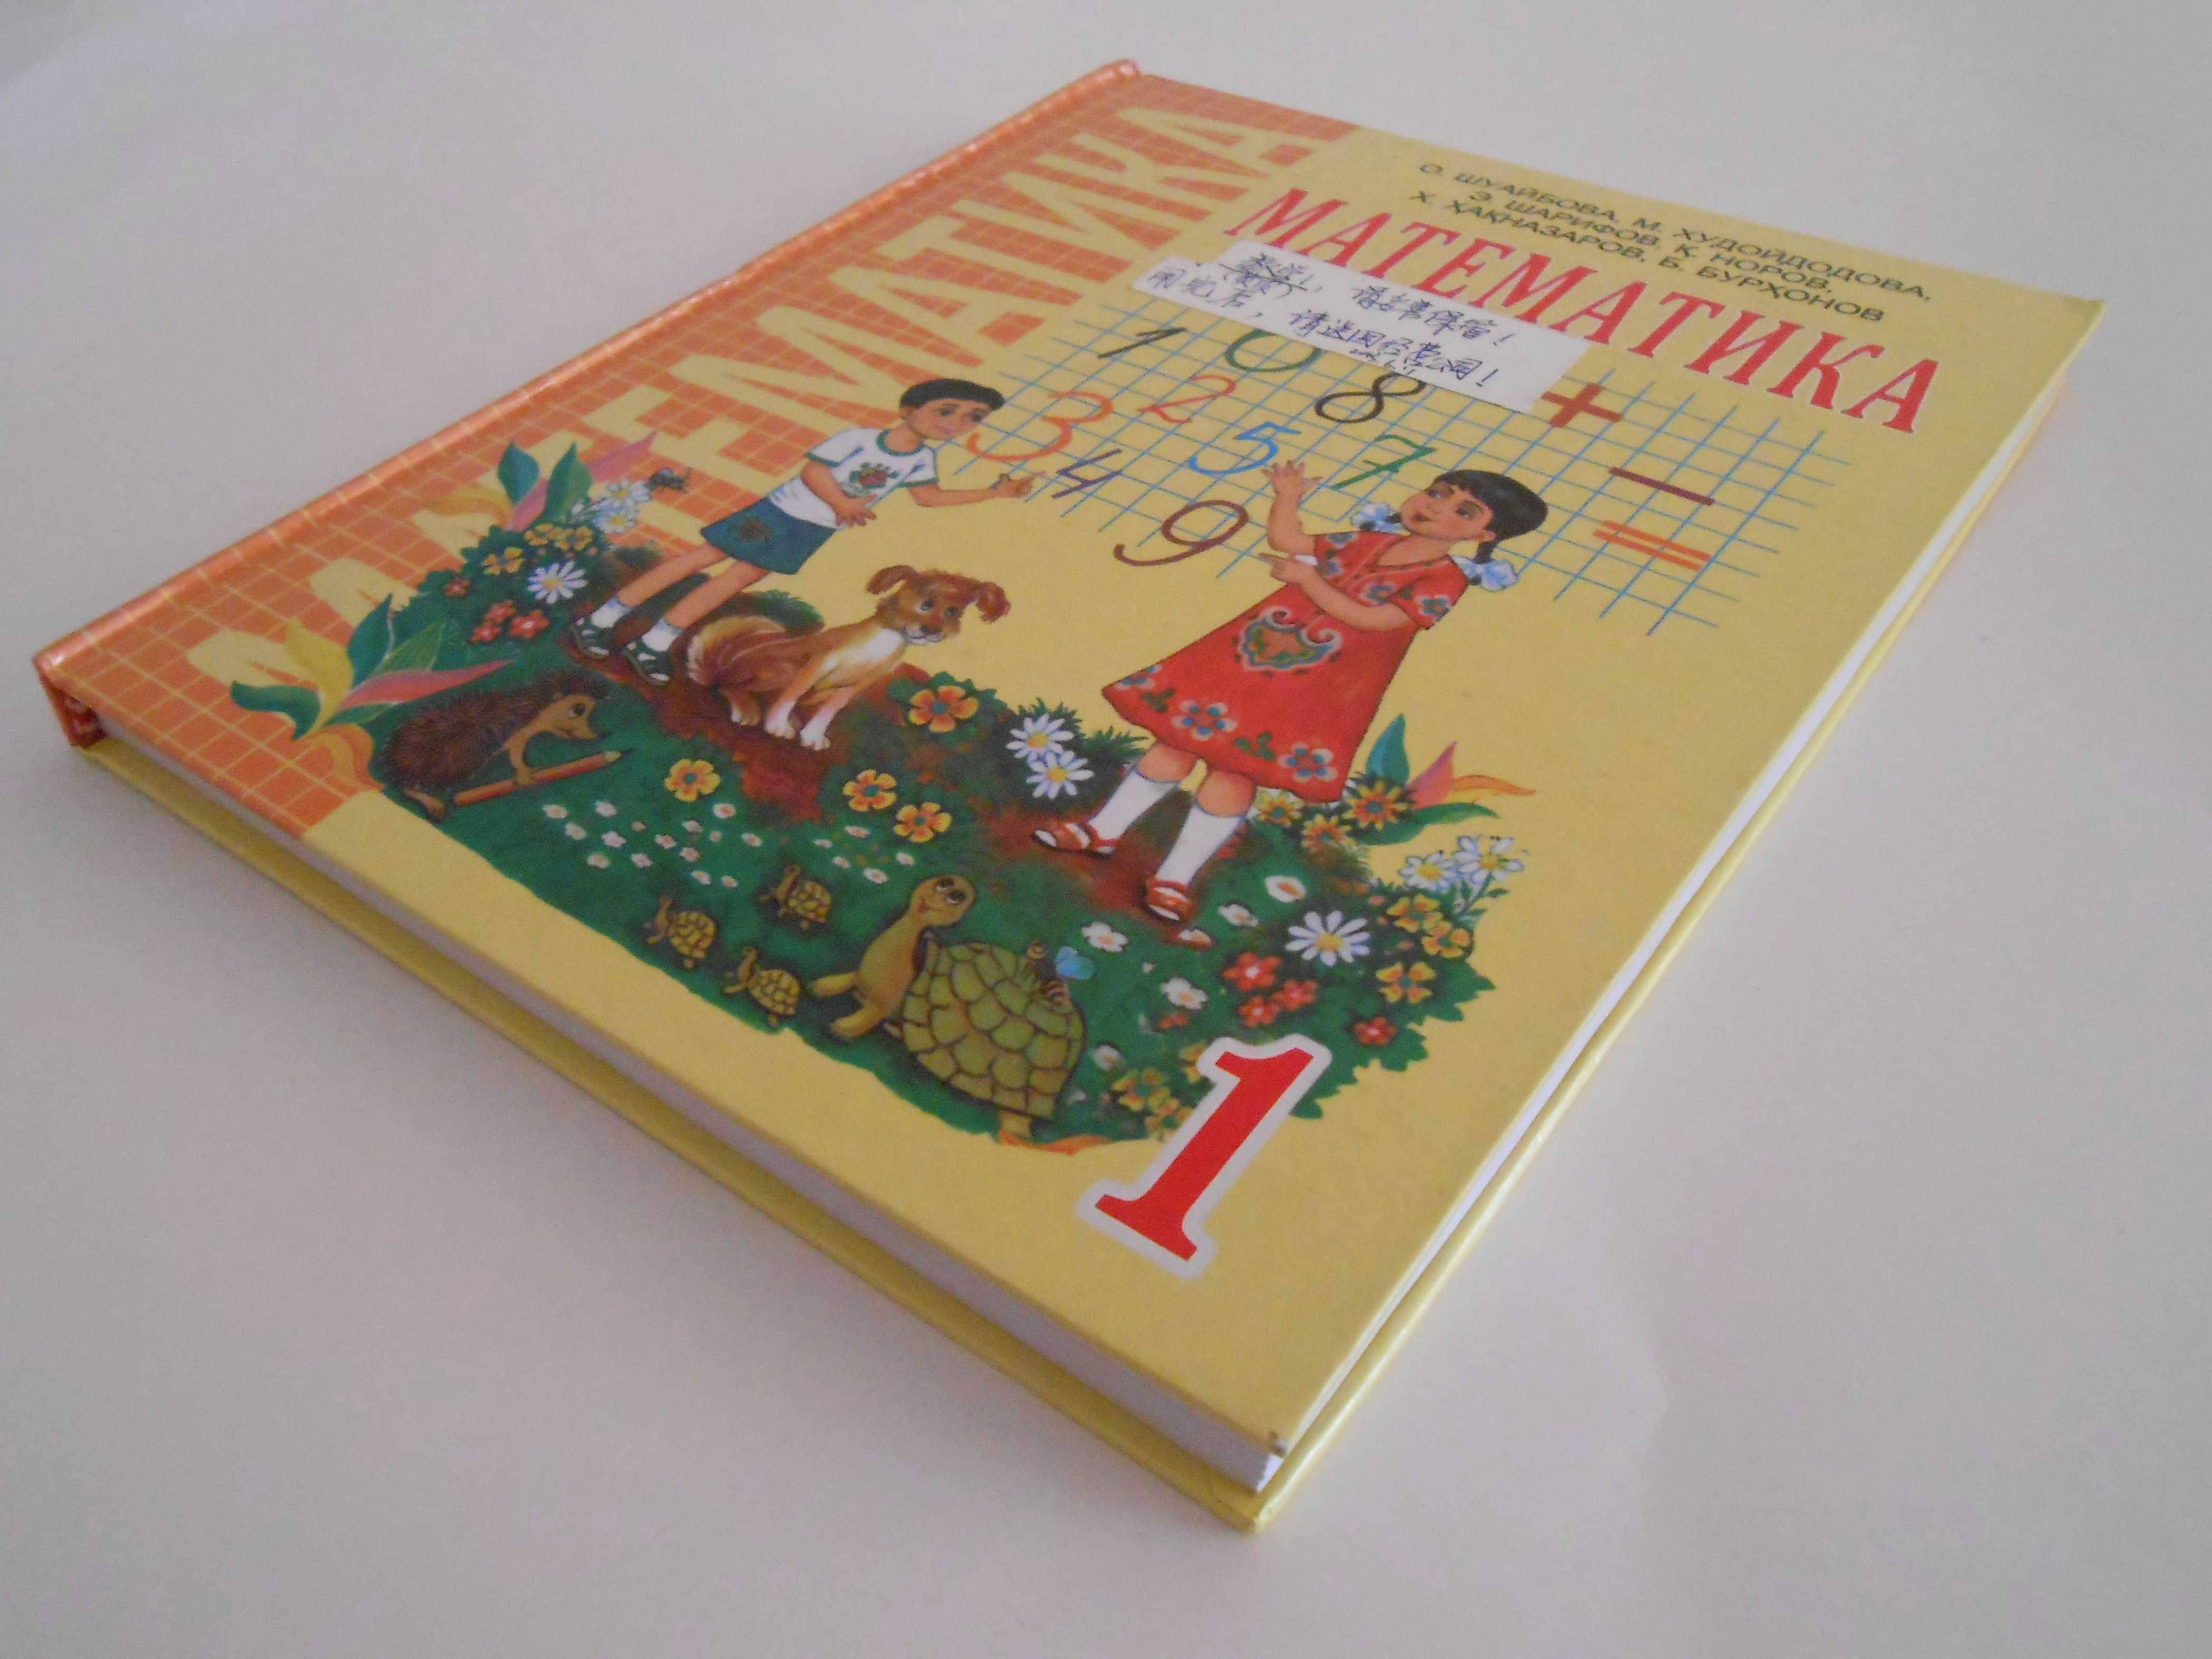 Offset printing hardcover books/education/according to customers' requirements